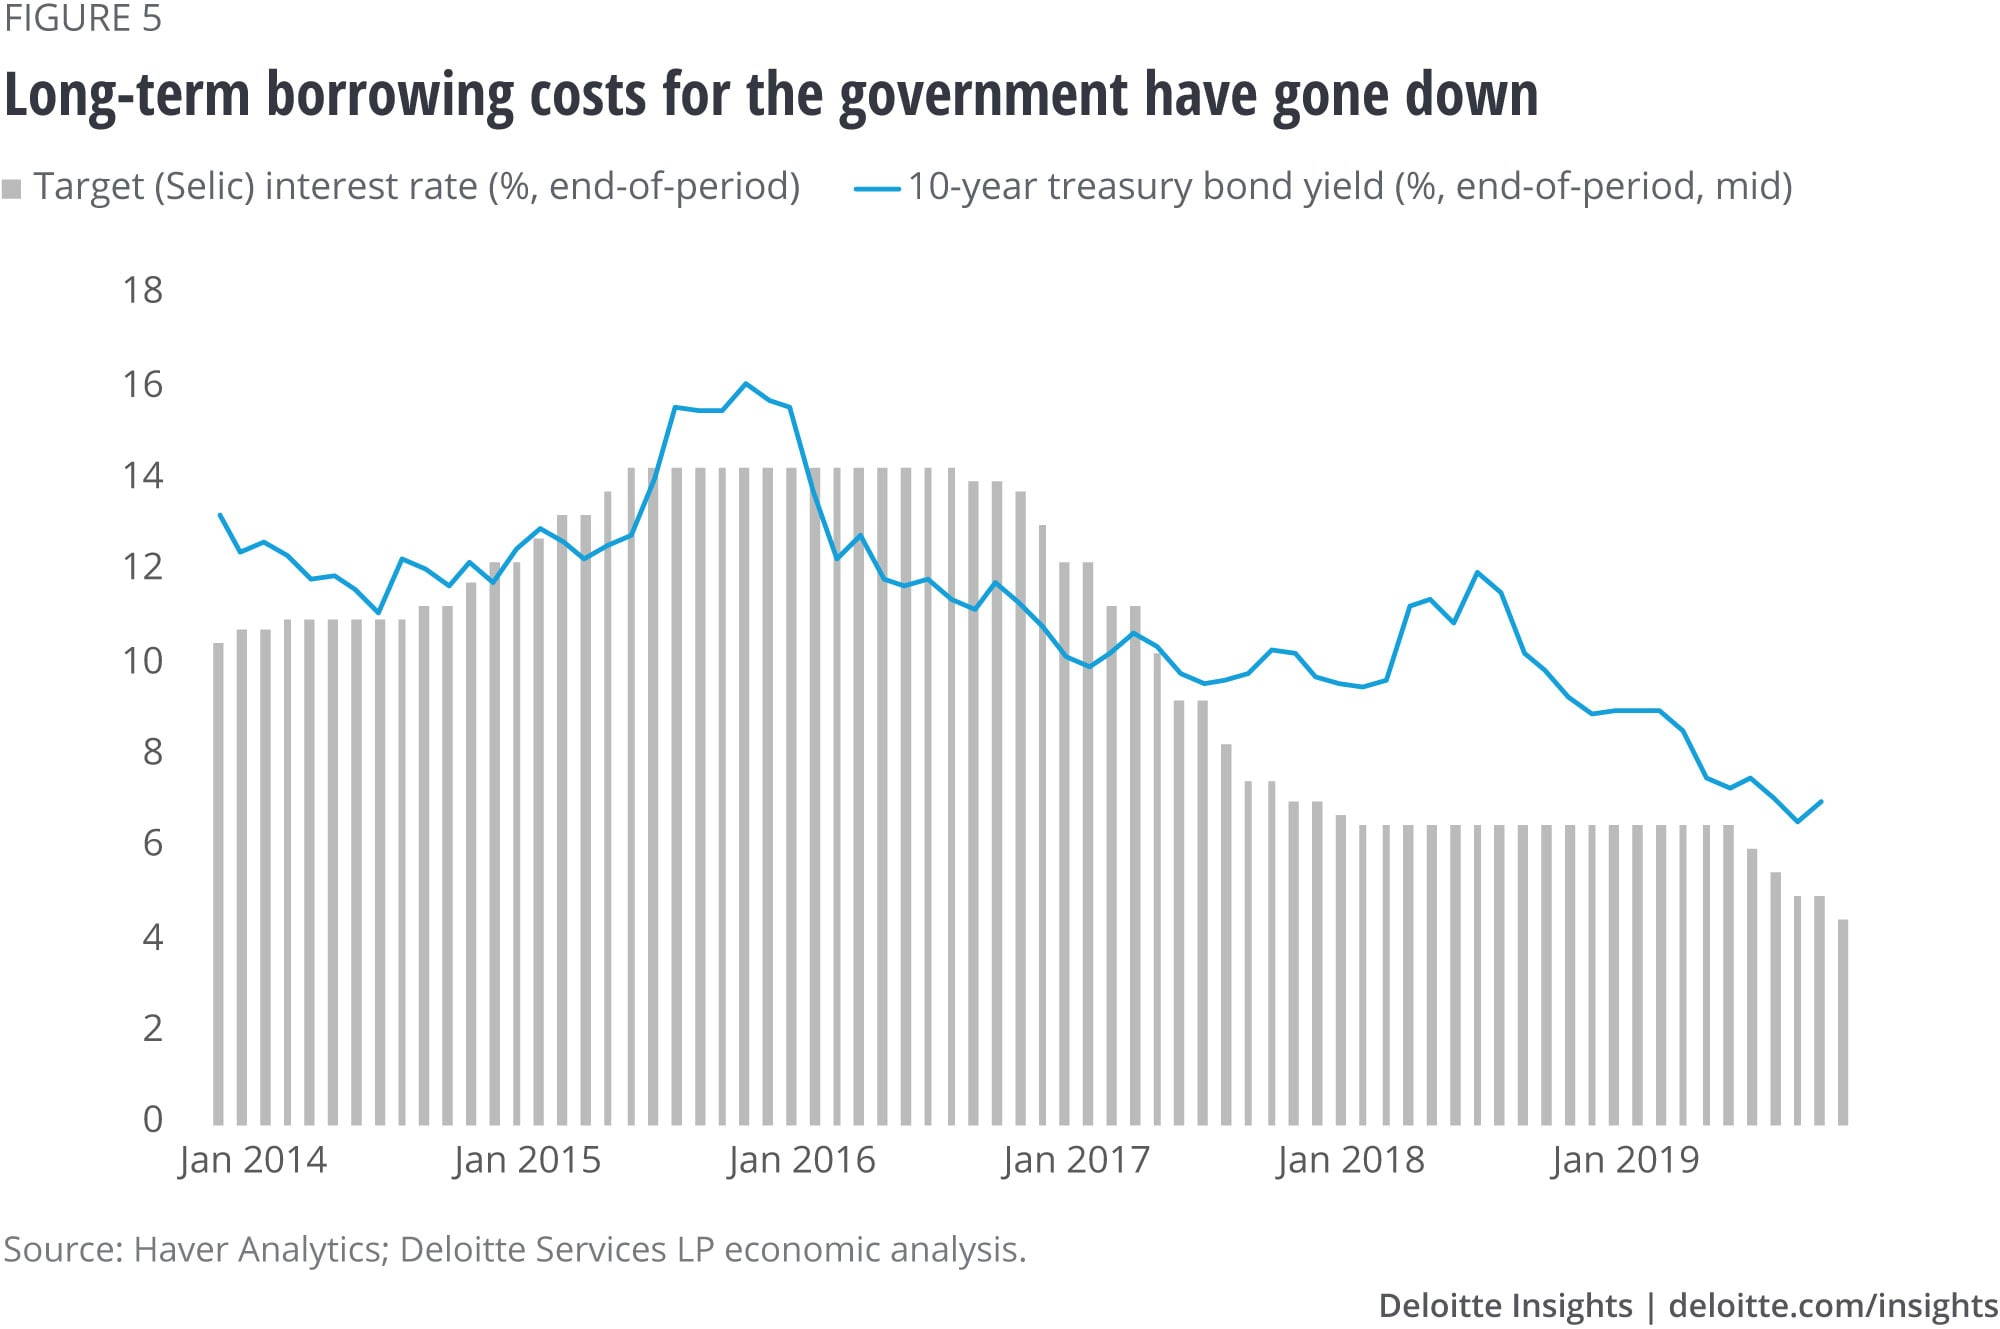 Long-term borrowing costs for the government have gone down